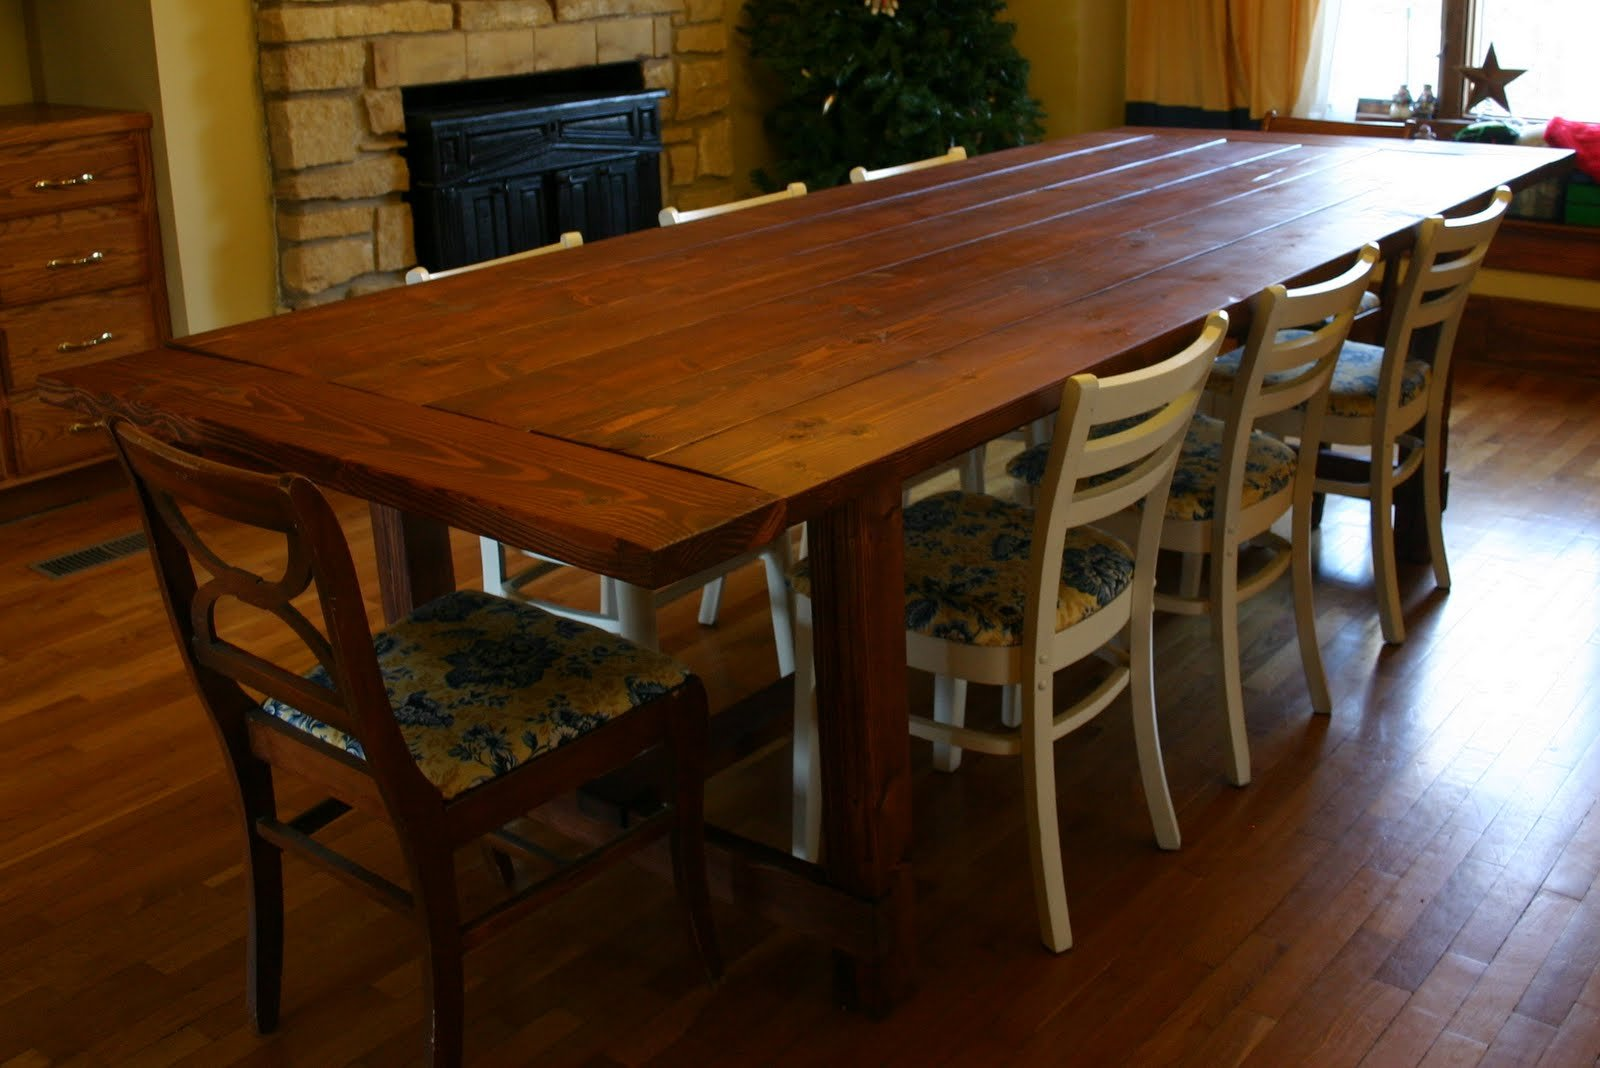 Pdf plans kitchen table woodworking plans download how to draw rocking horse macho10zst - Kitchen table woodworking plans ...